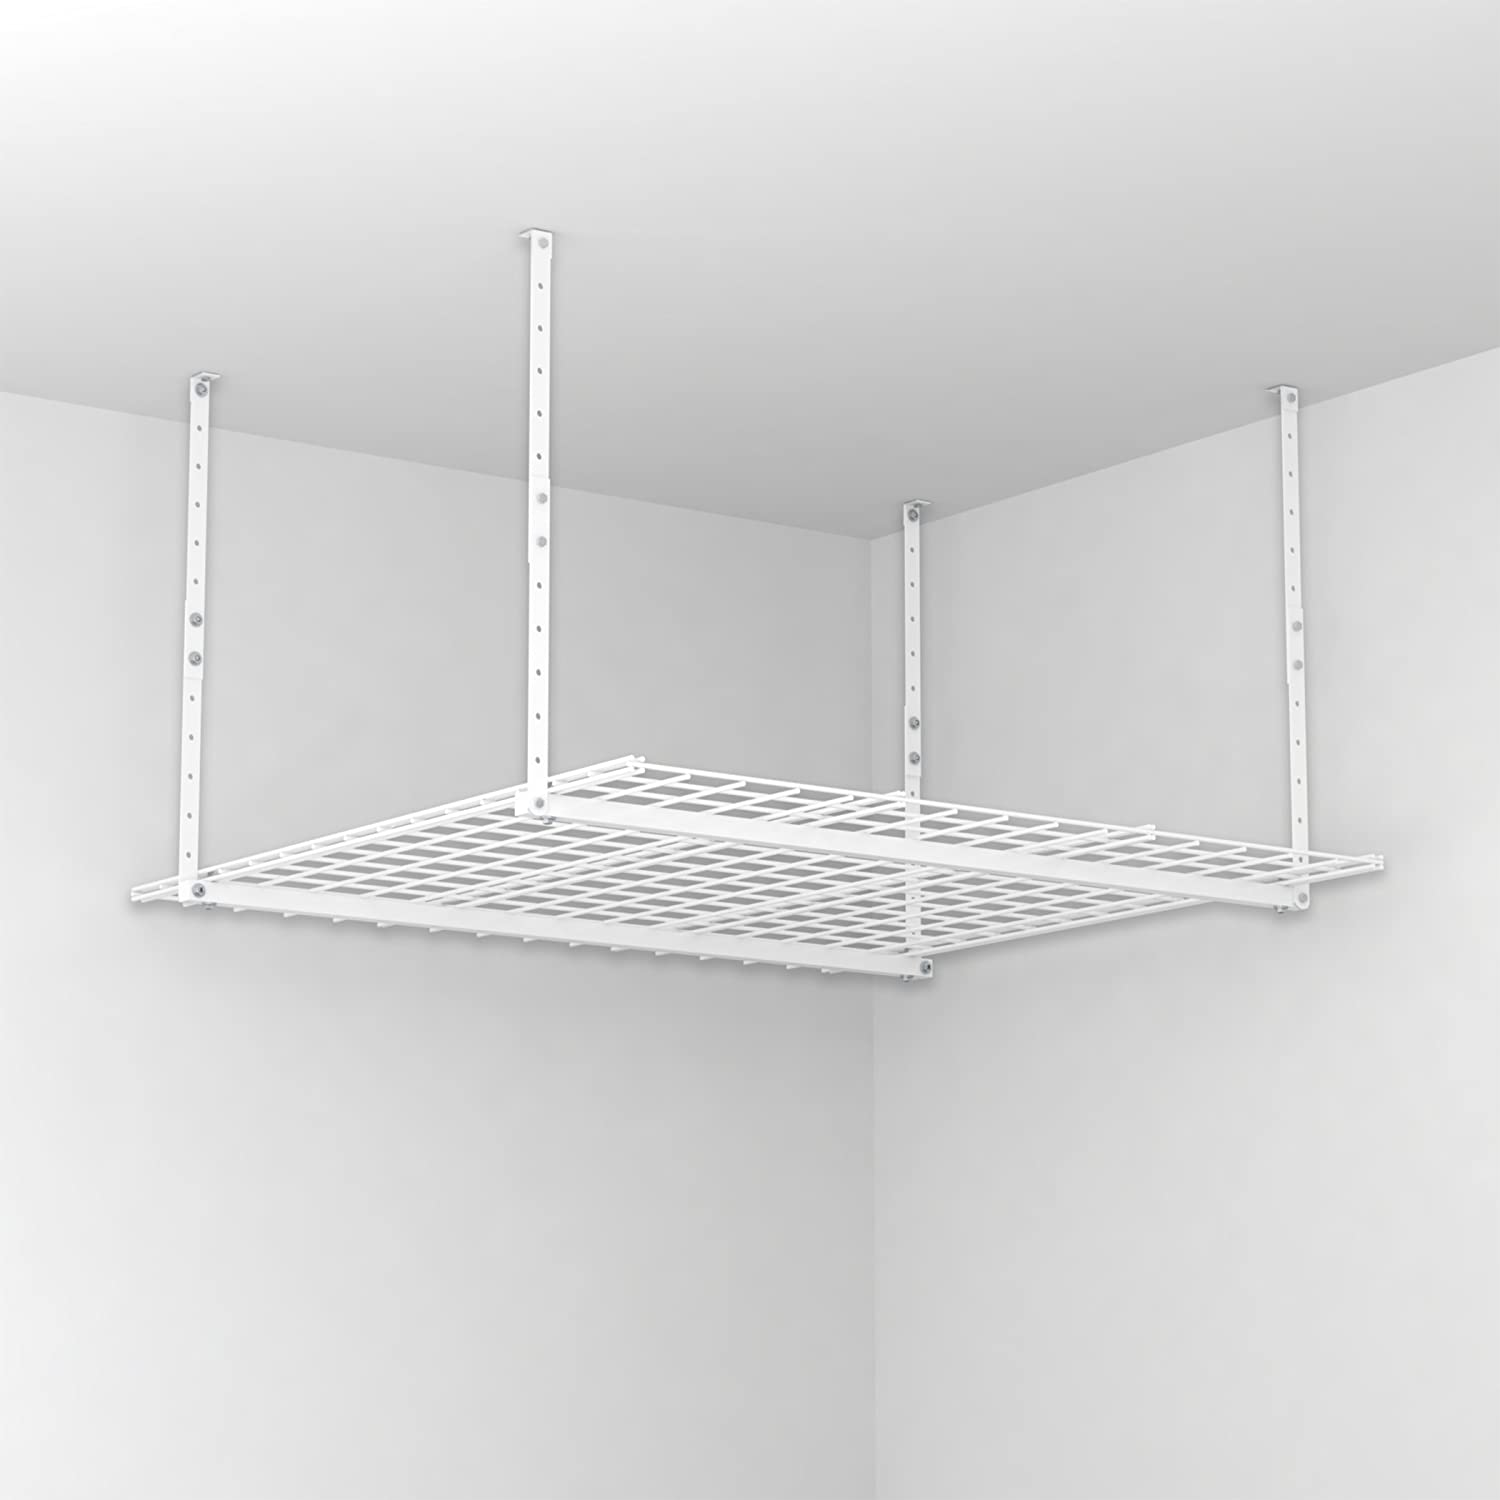 Amazon.com: HyLoft 00540 45 Inch By 45 Inch Overhead Storage System, White:  Home Improvement